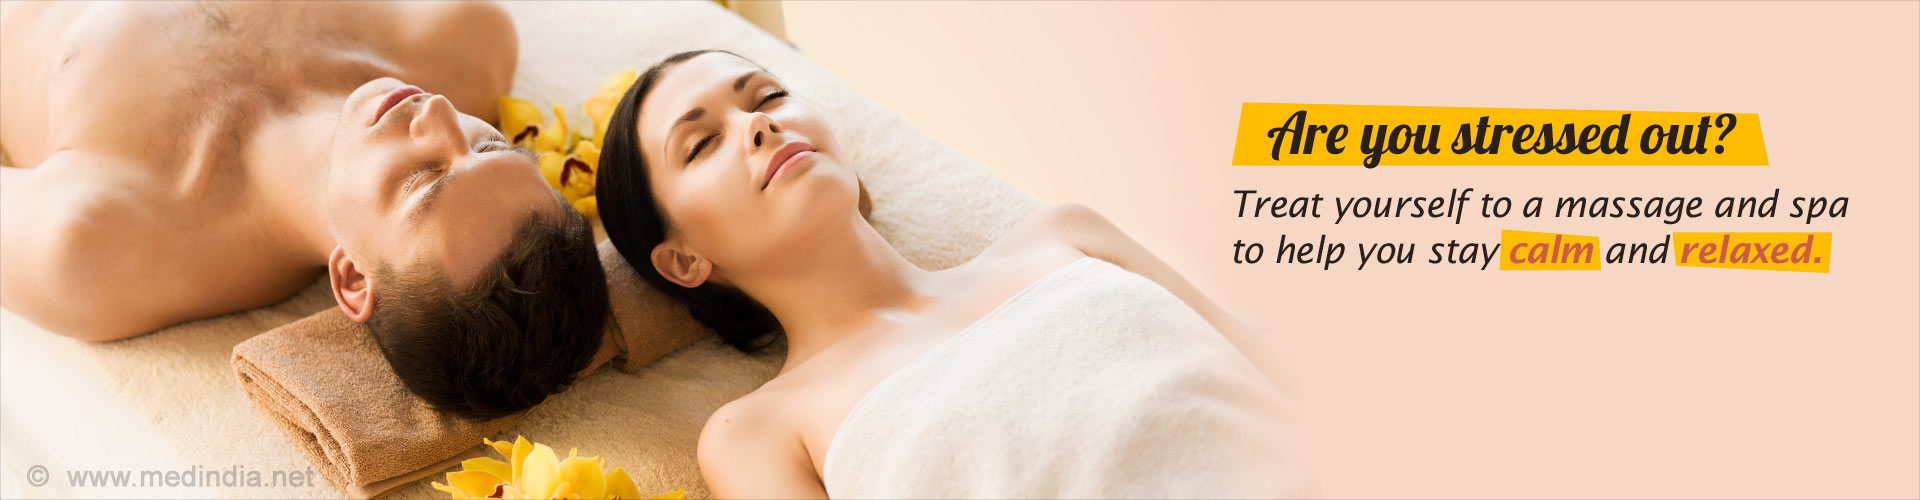 Are you stressed out? Treat yourself to a massage and spa to help you stay calm and relaxed.